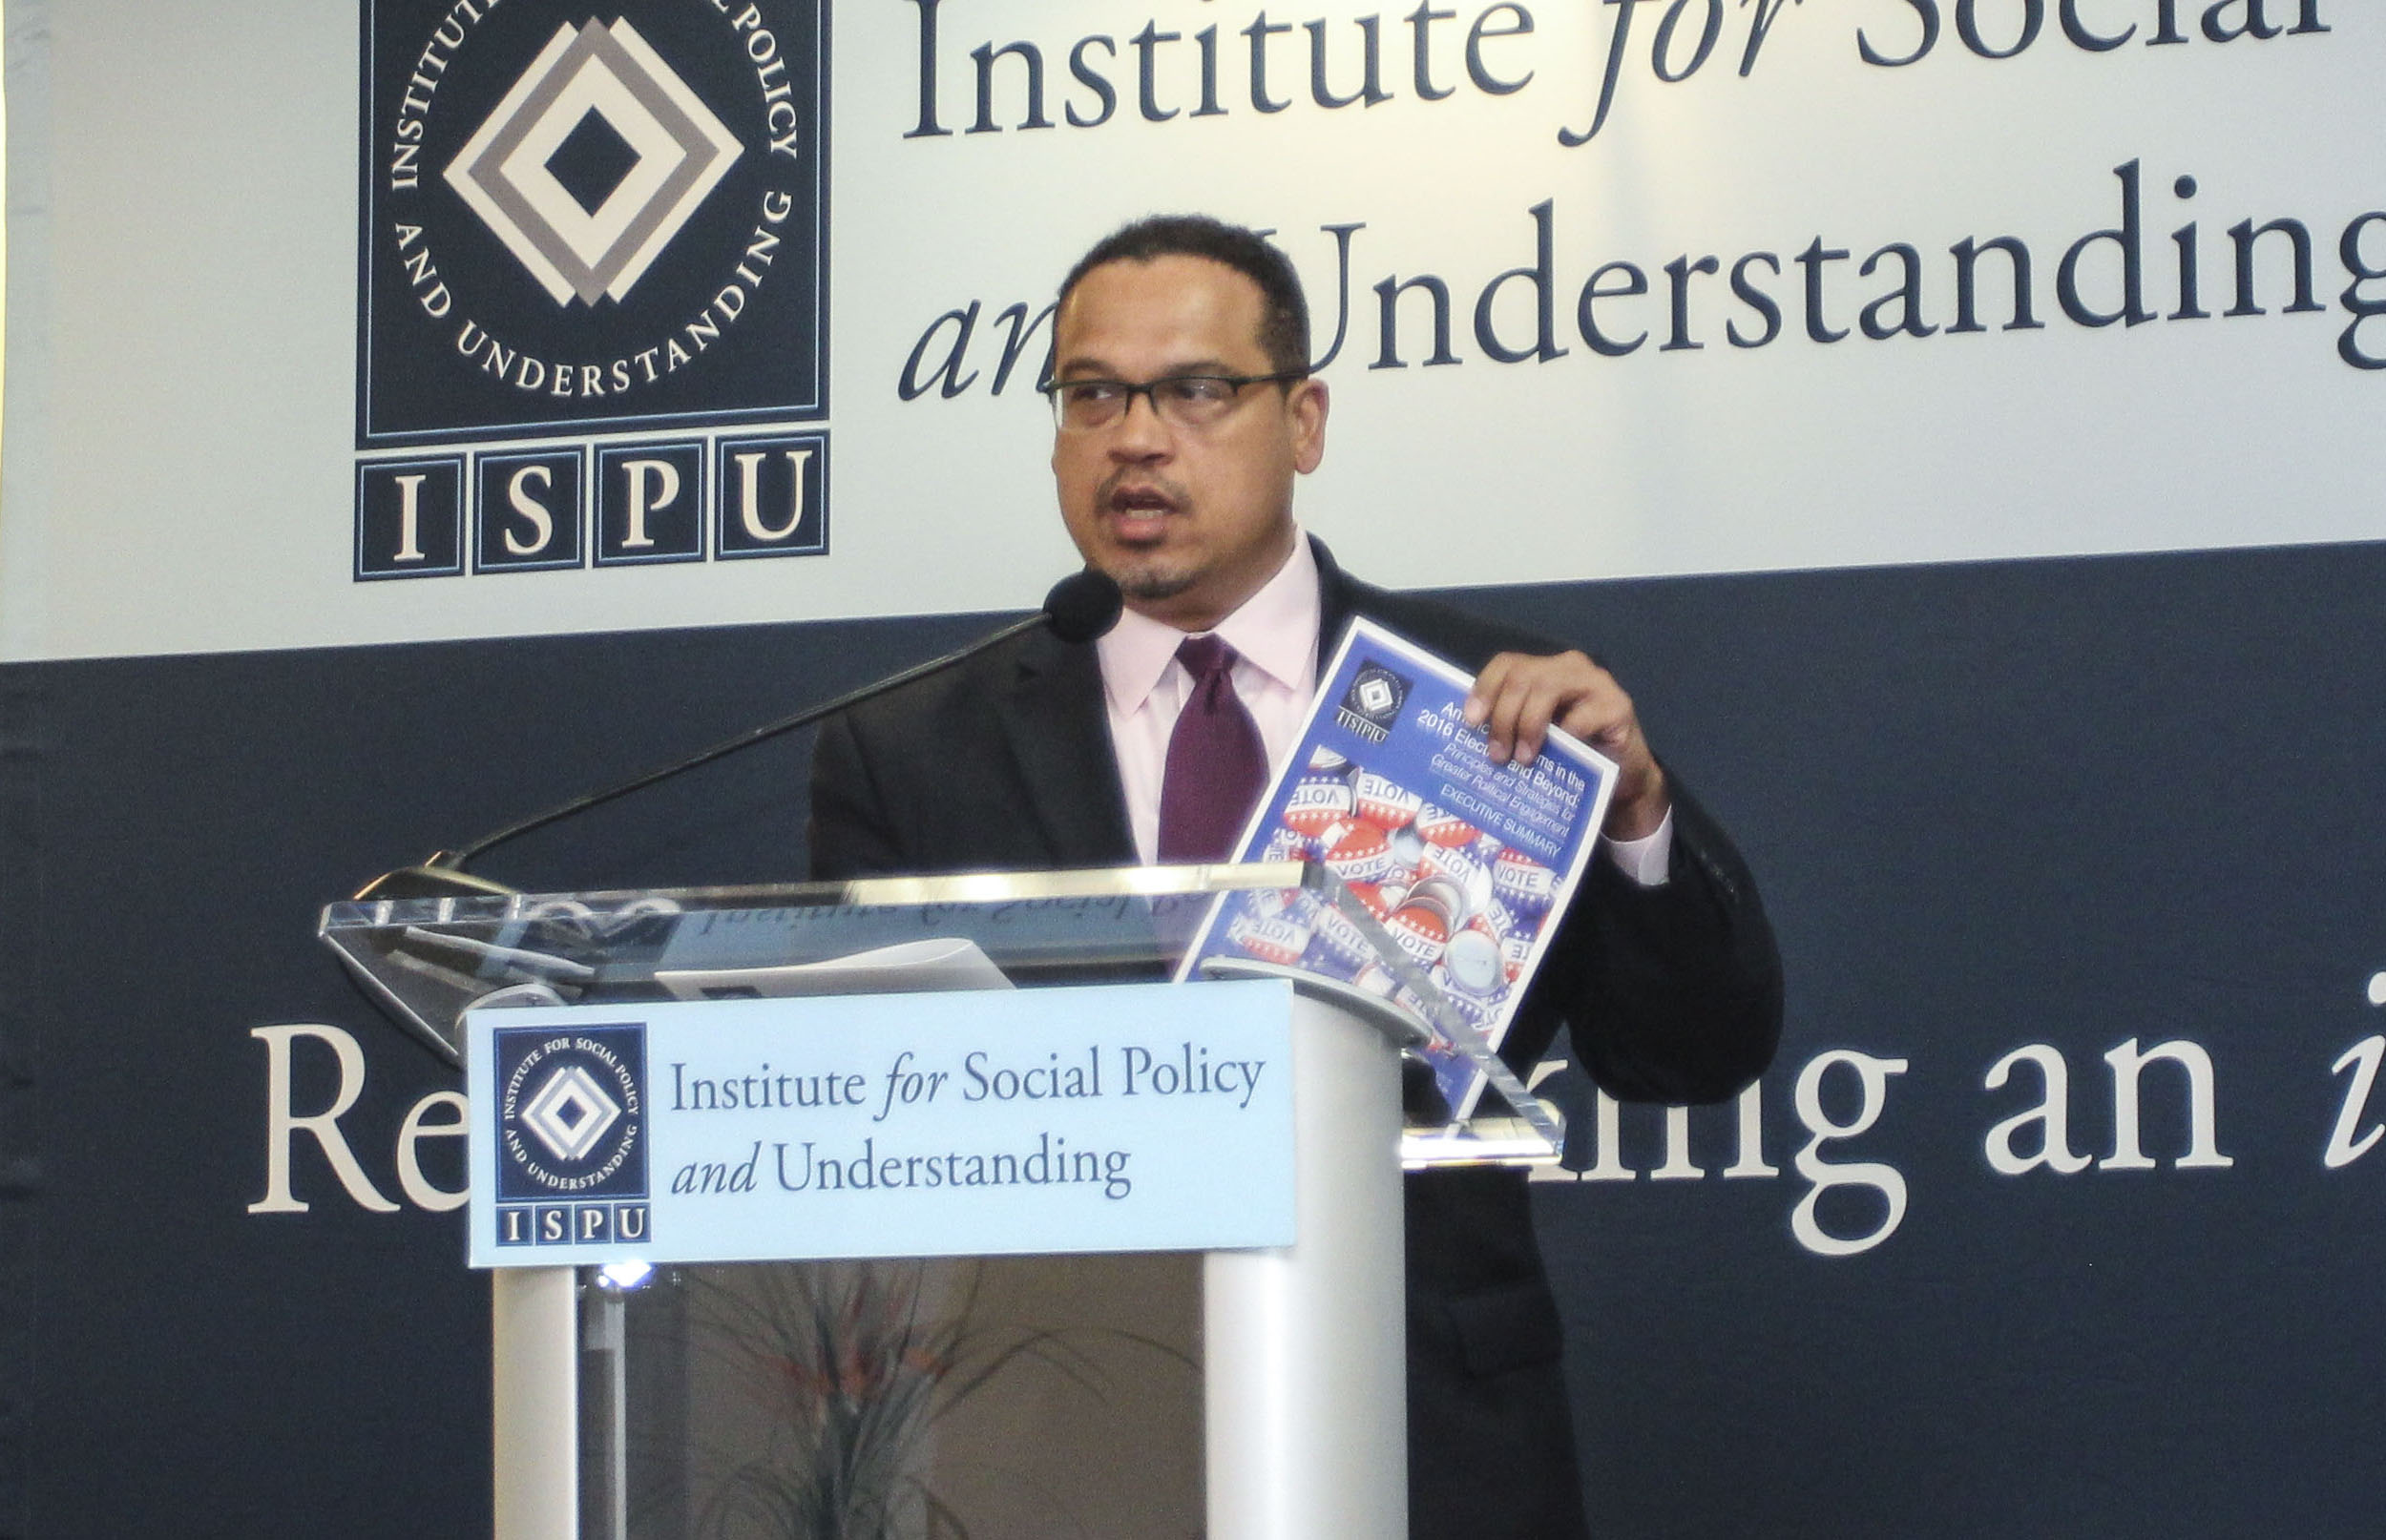 Rep. Keith Ellison discussing the need for ISPU's research